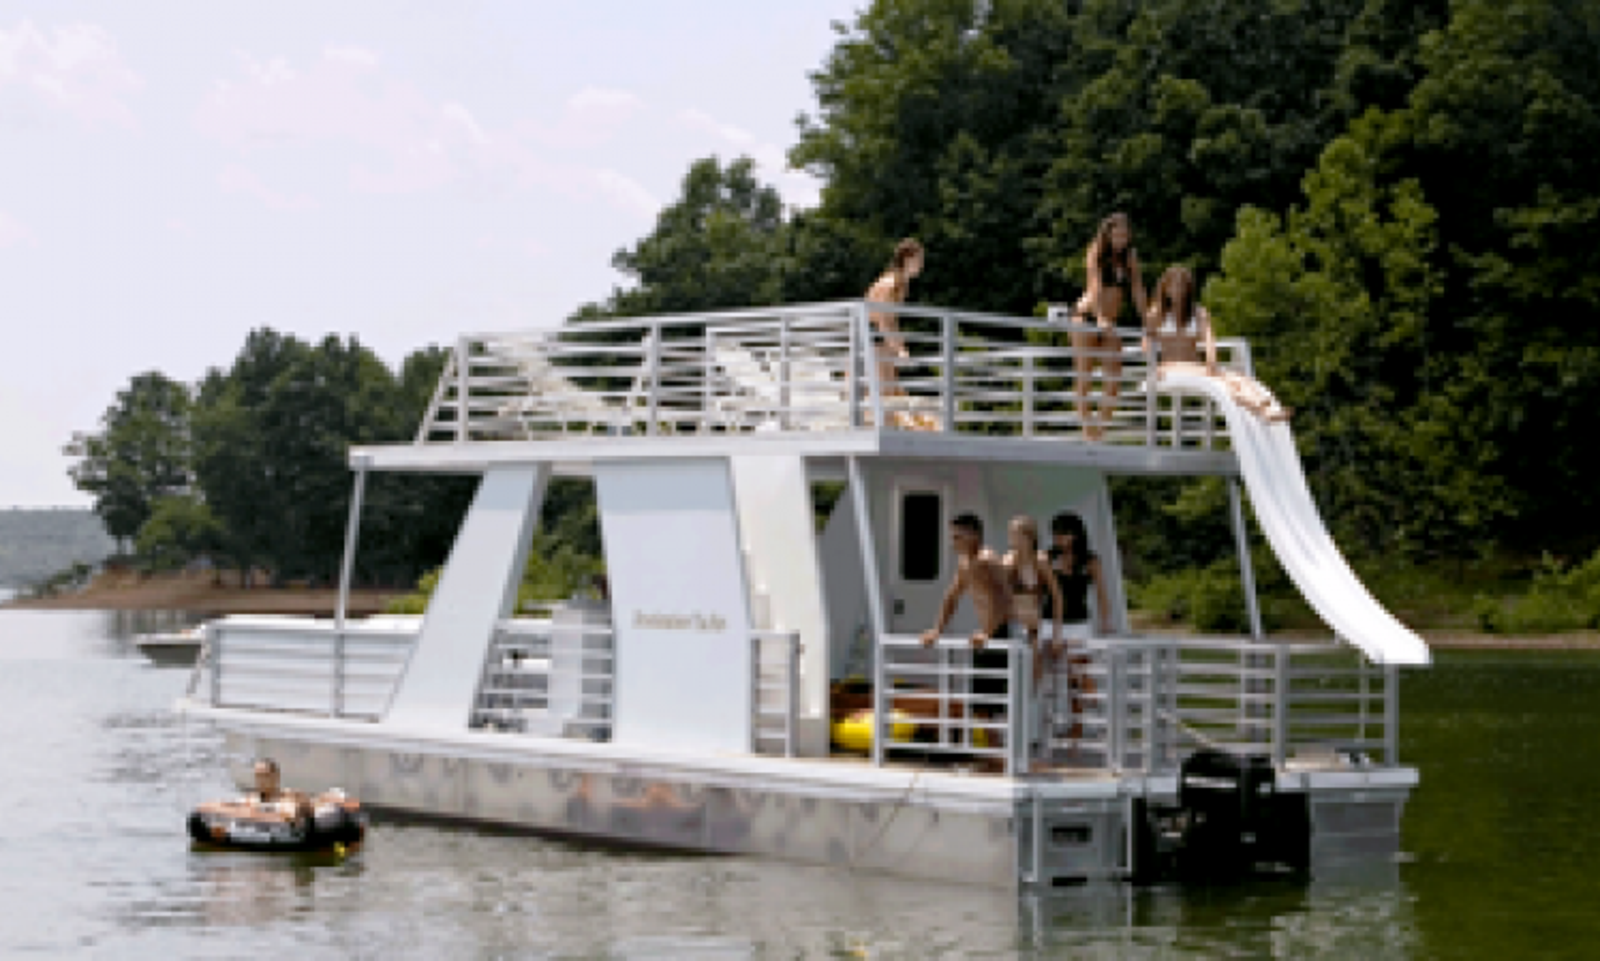 Rent a 35' Party Yacht on Lake Lanier in Gainesville ... Lake Lanier Party